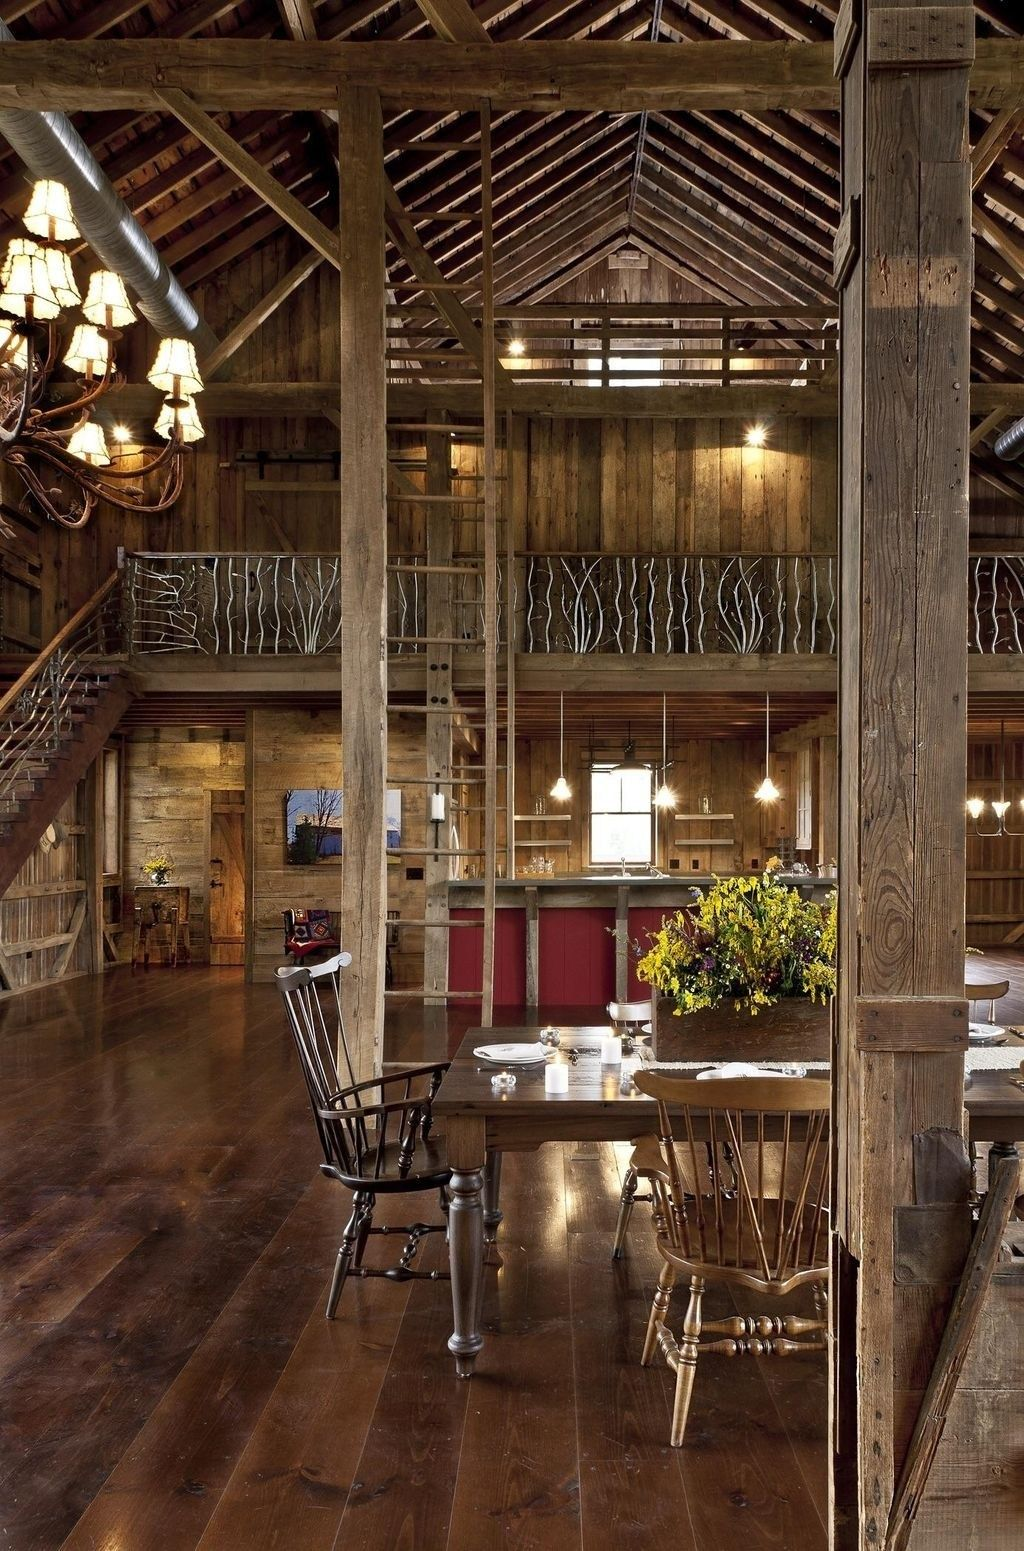 32 The Best Converted Barn Into Home Ideas | Converted ...